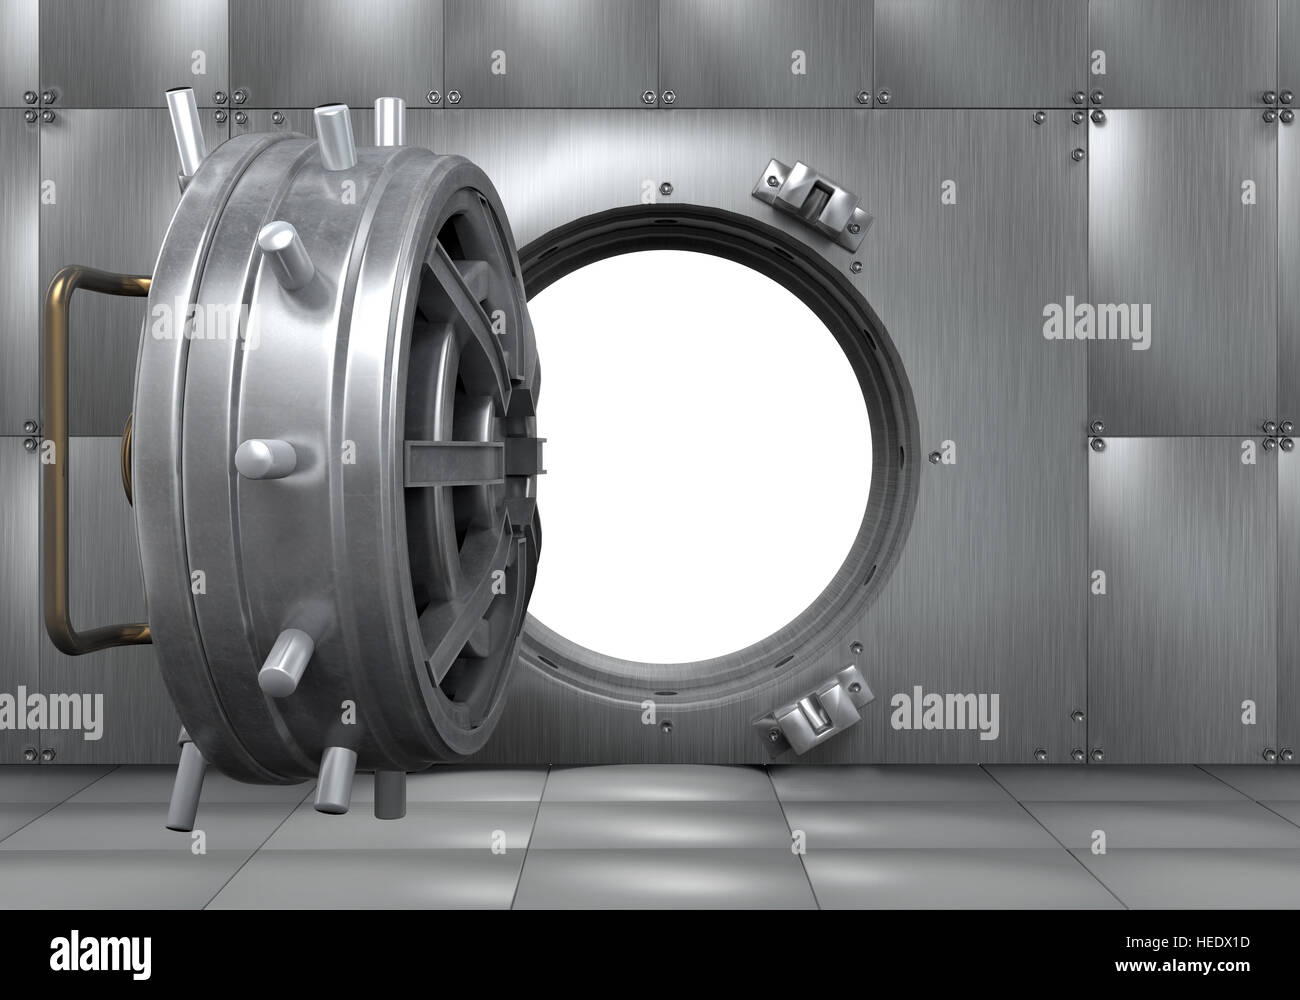 Open Bank Vault Door Open Bank Vault